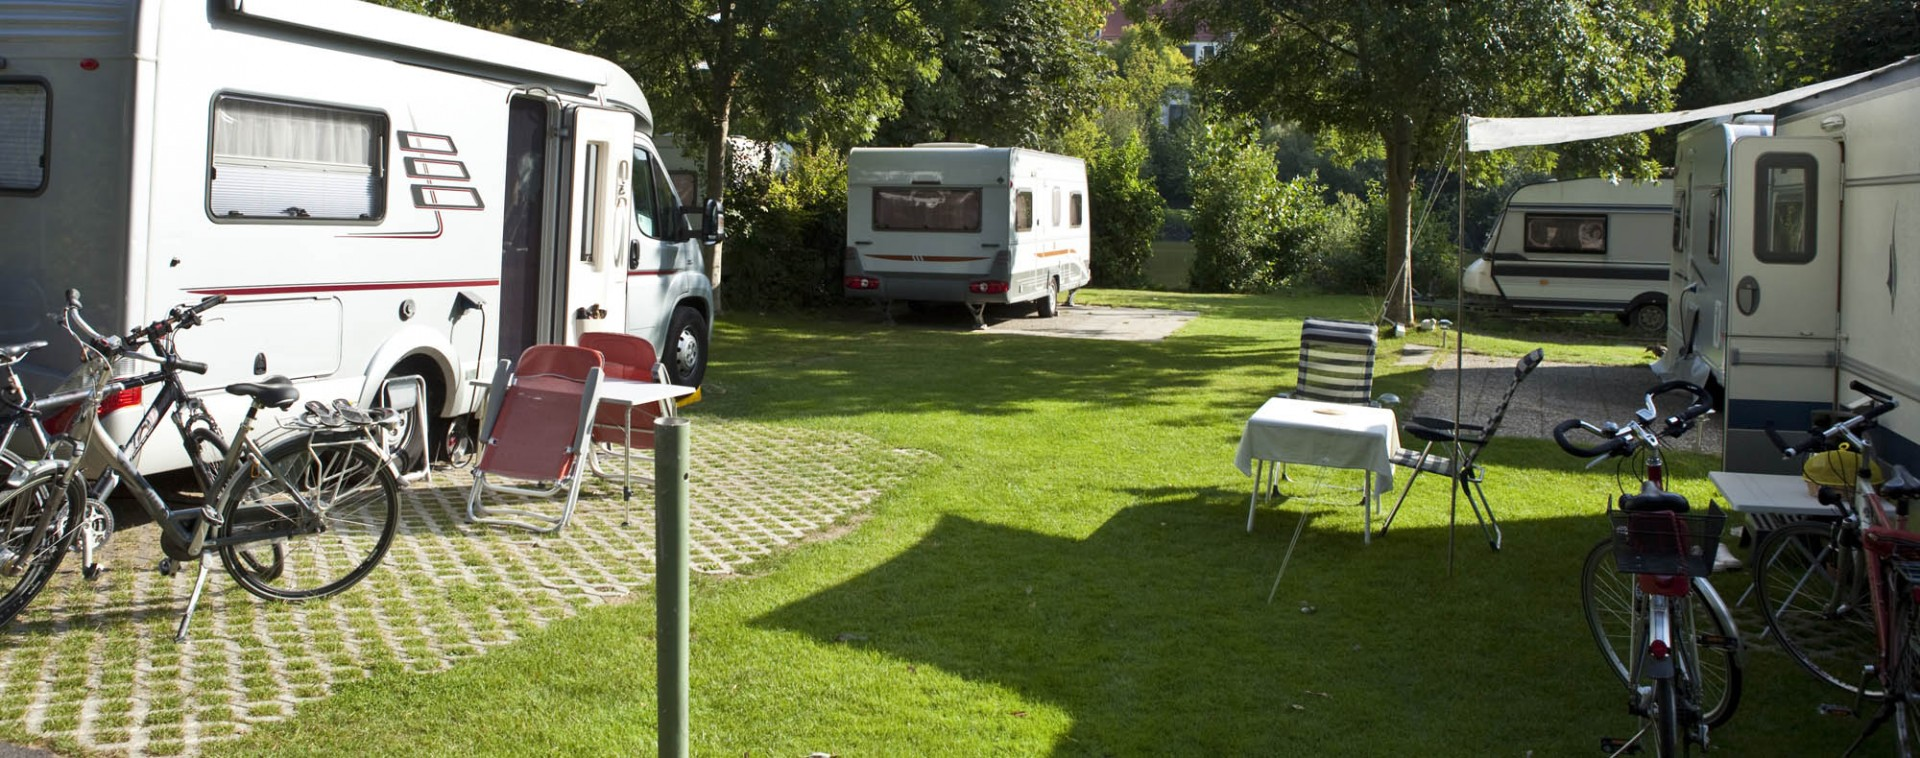 Campsites in Liège province | © ThinkstockPhotos